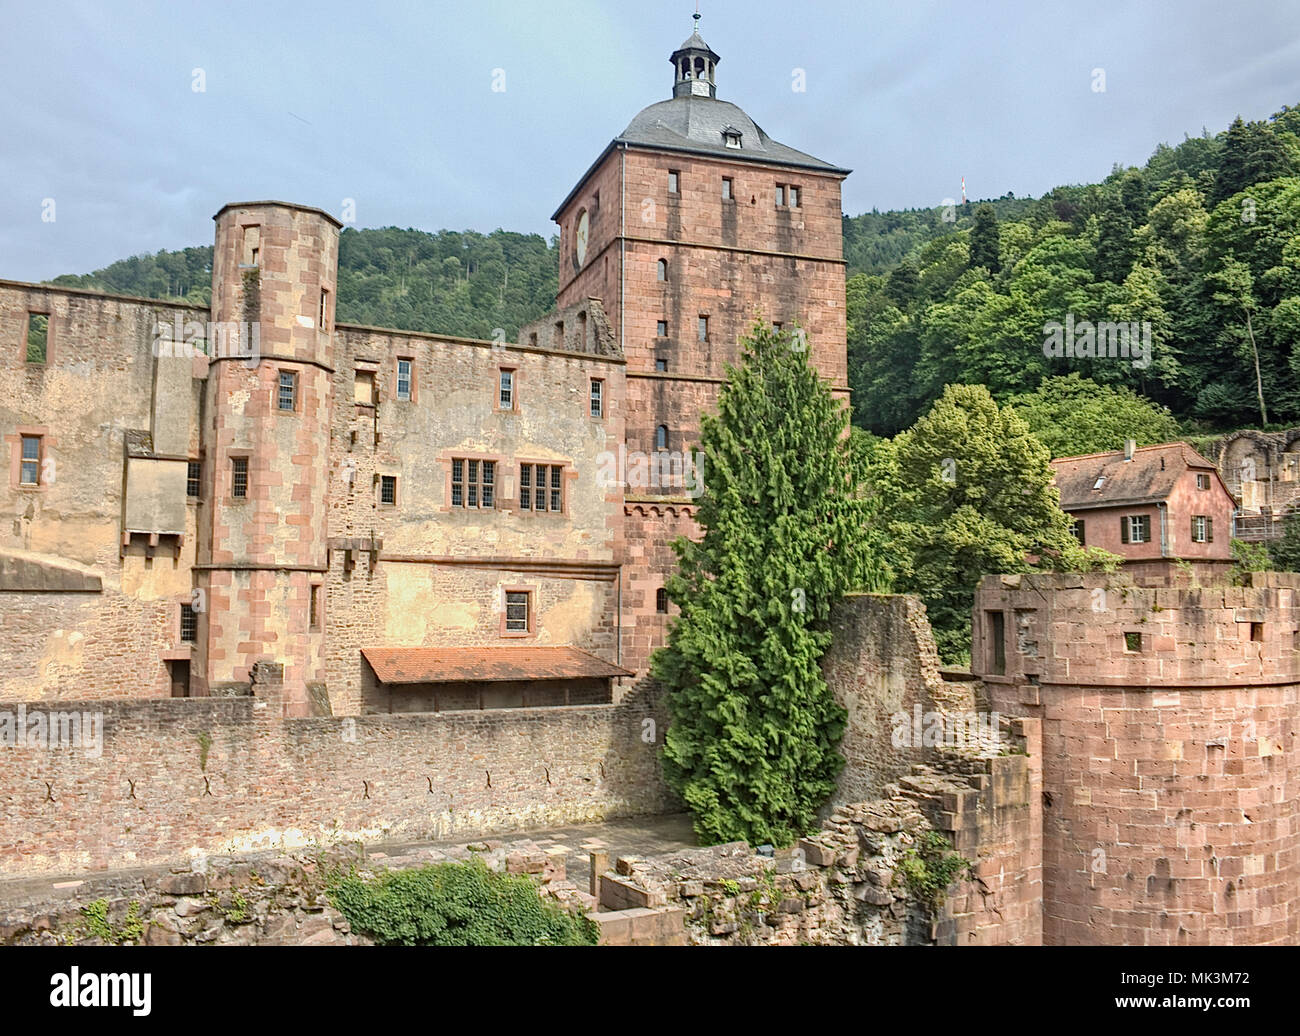 Hiedleberg is a medium sized old City in Germany - Stock Image